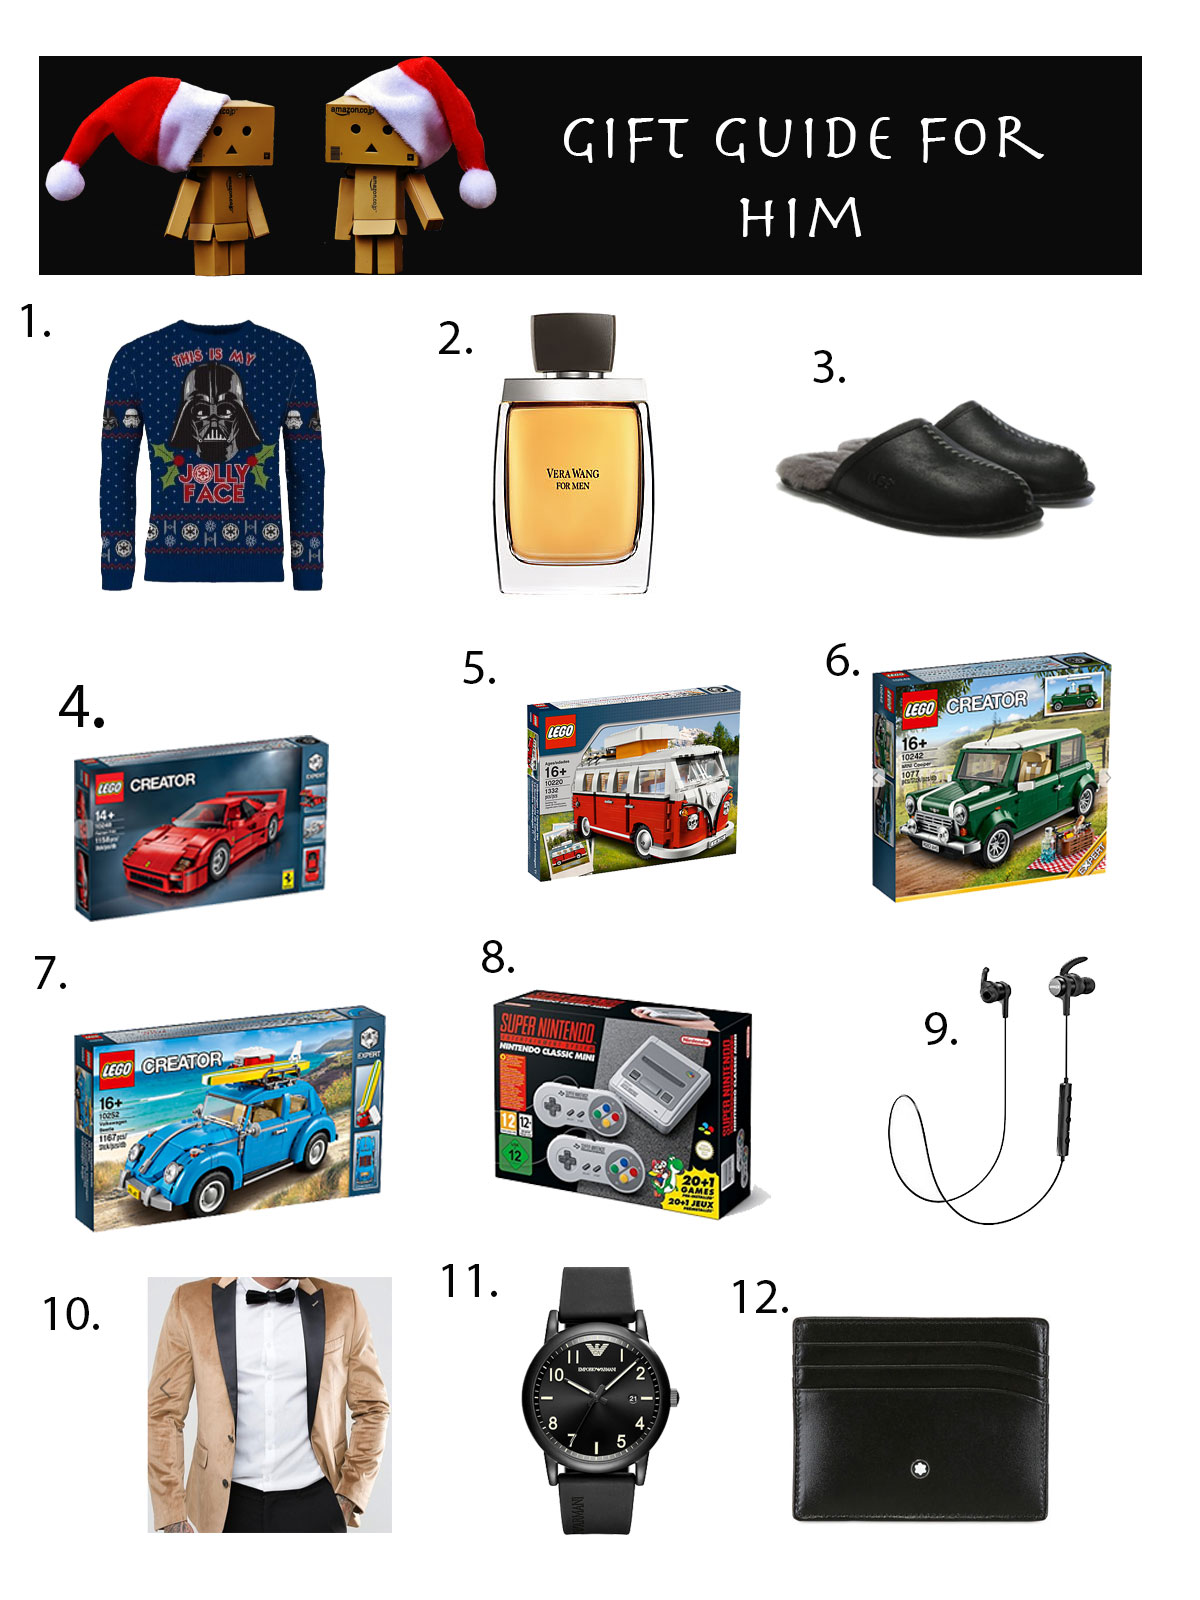 Holiday Gift guide for him - Christmas Gift Guide for Him - 2017